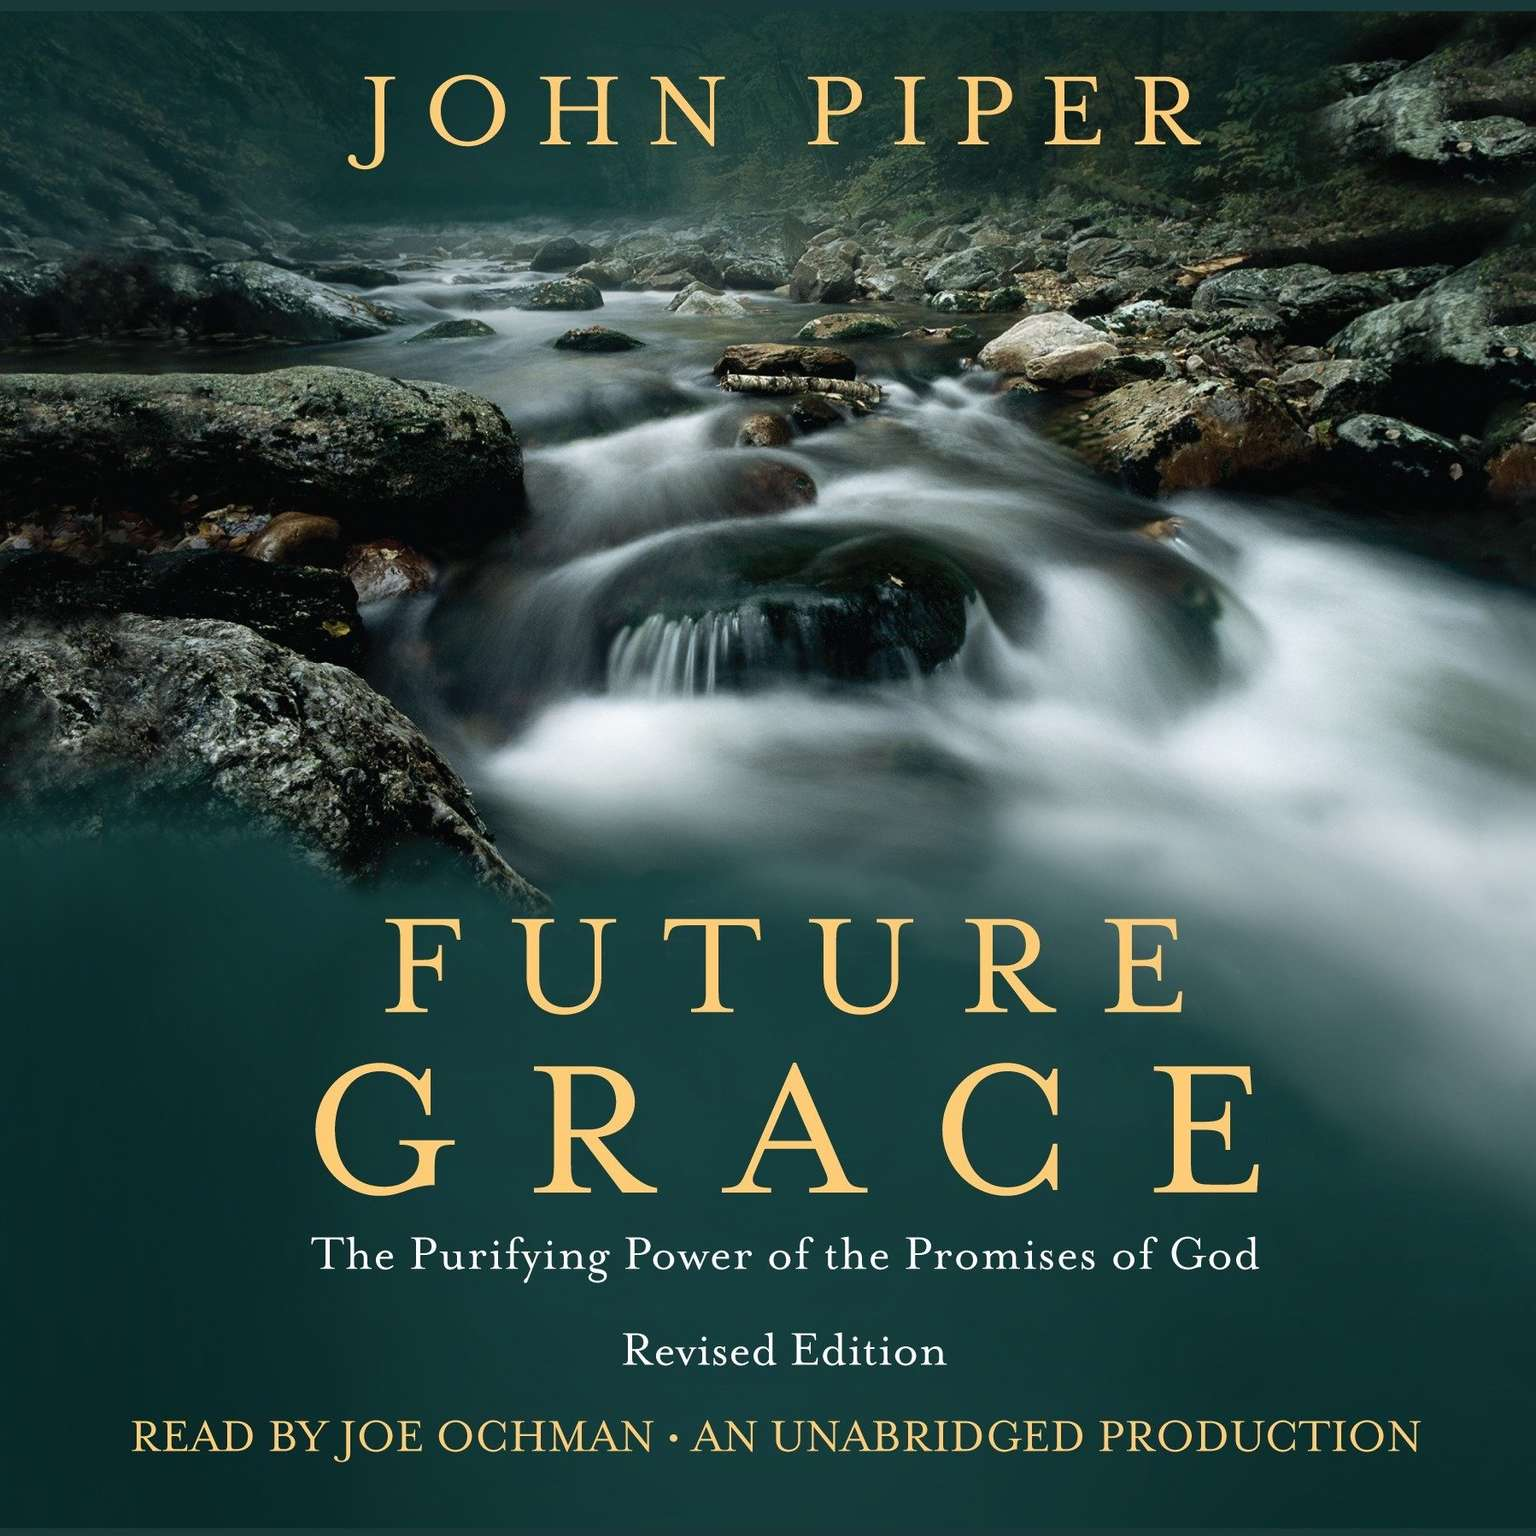 Printable Future Grace, Revised Edition: The Purifying Power of the Promises of God Audiobook Cover Art